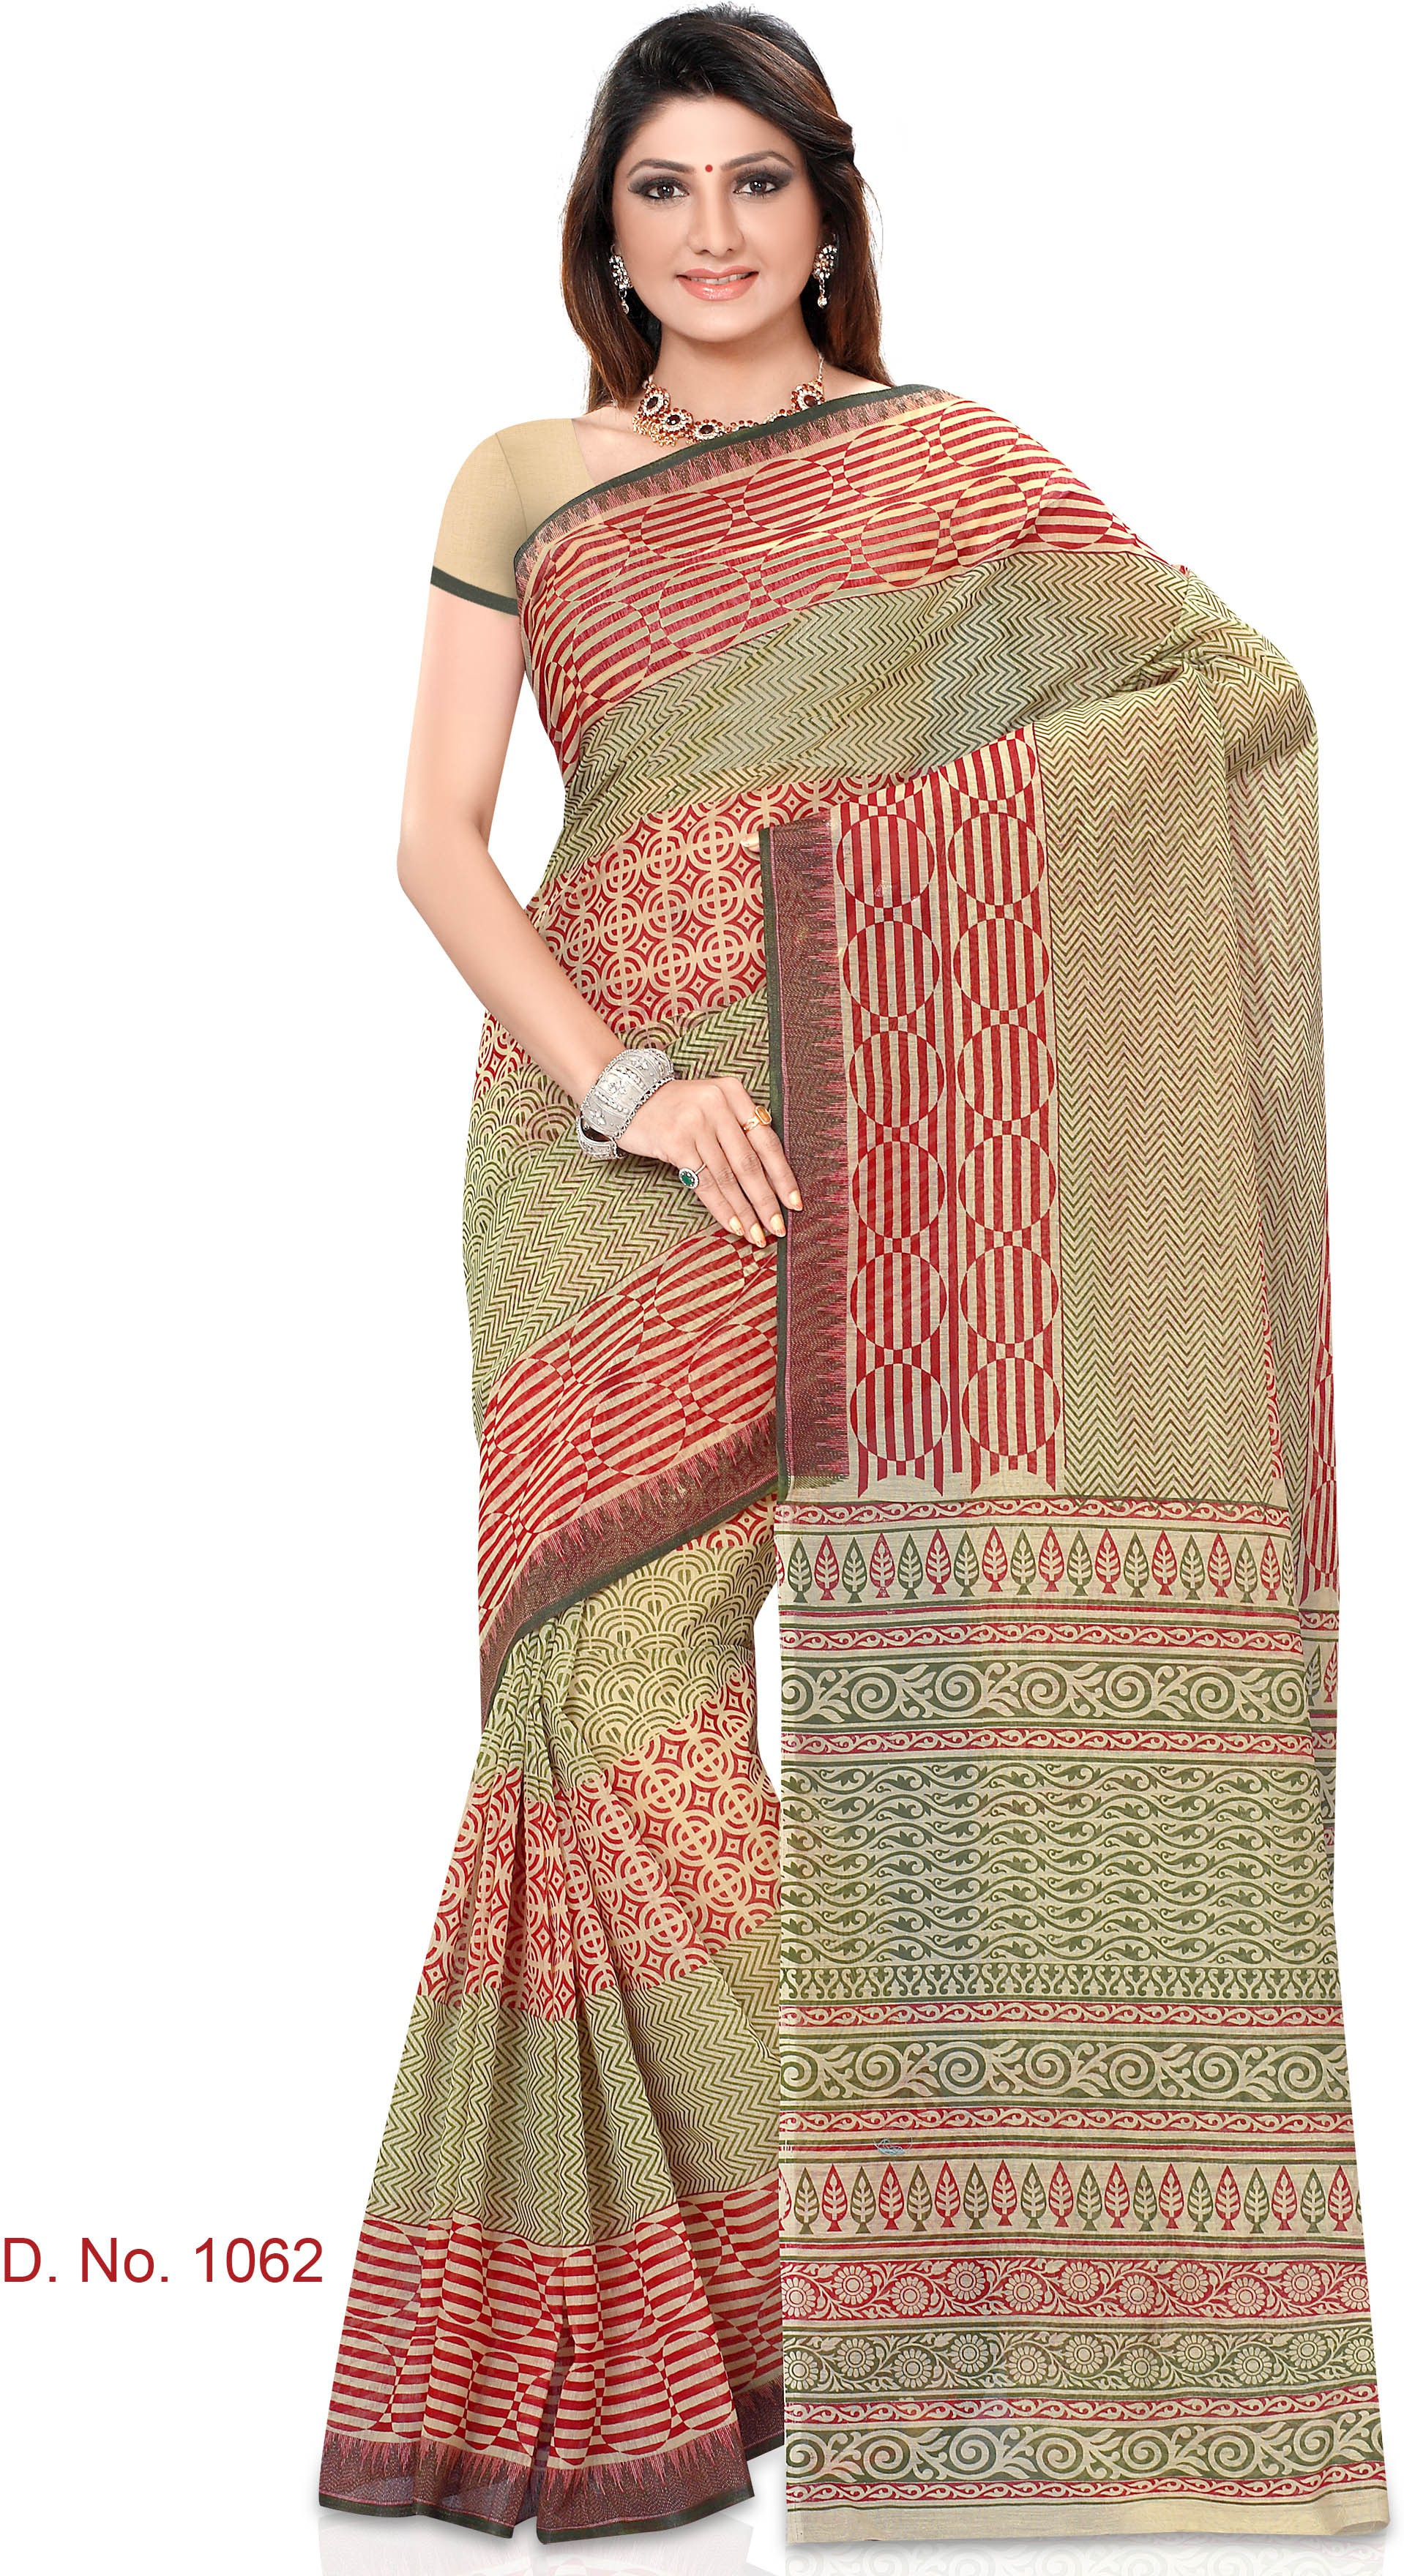 Indianbeauty Striped, Printed Fashion Cotton Sari(Beige, Red)